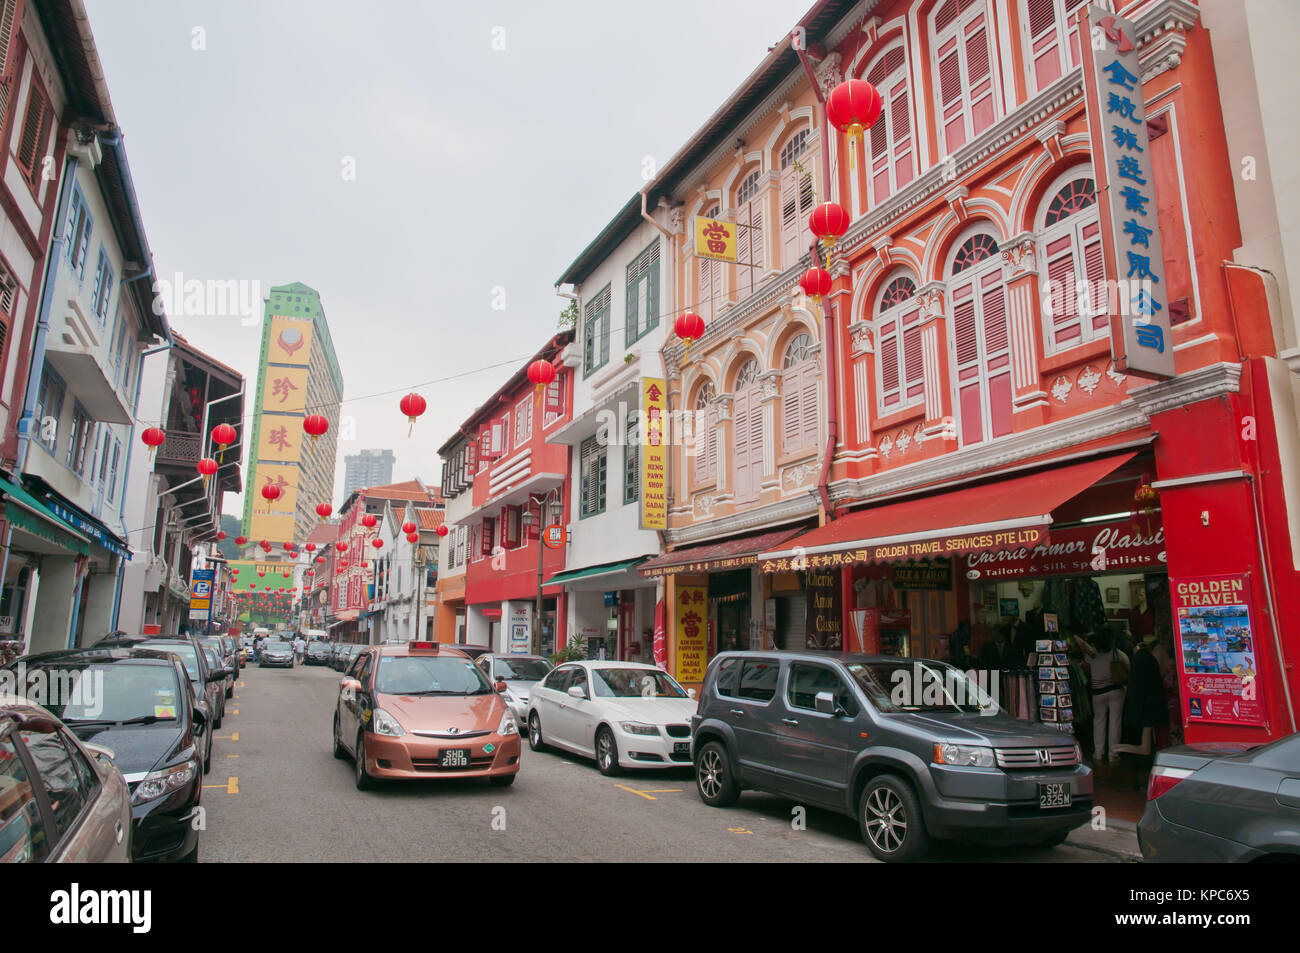 Street in Chinatown with old and traditional shophouse architecture preserved from the colonial days. - Stock Image